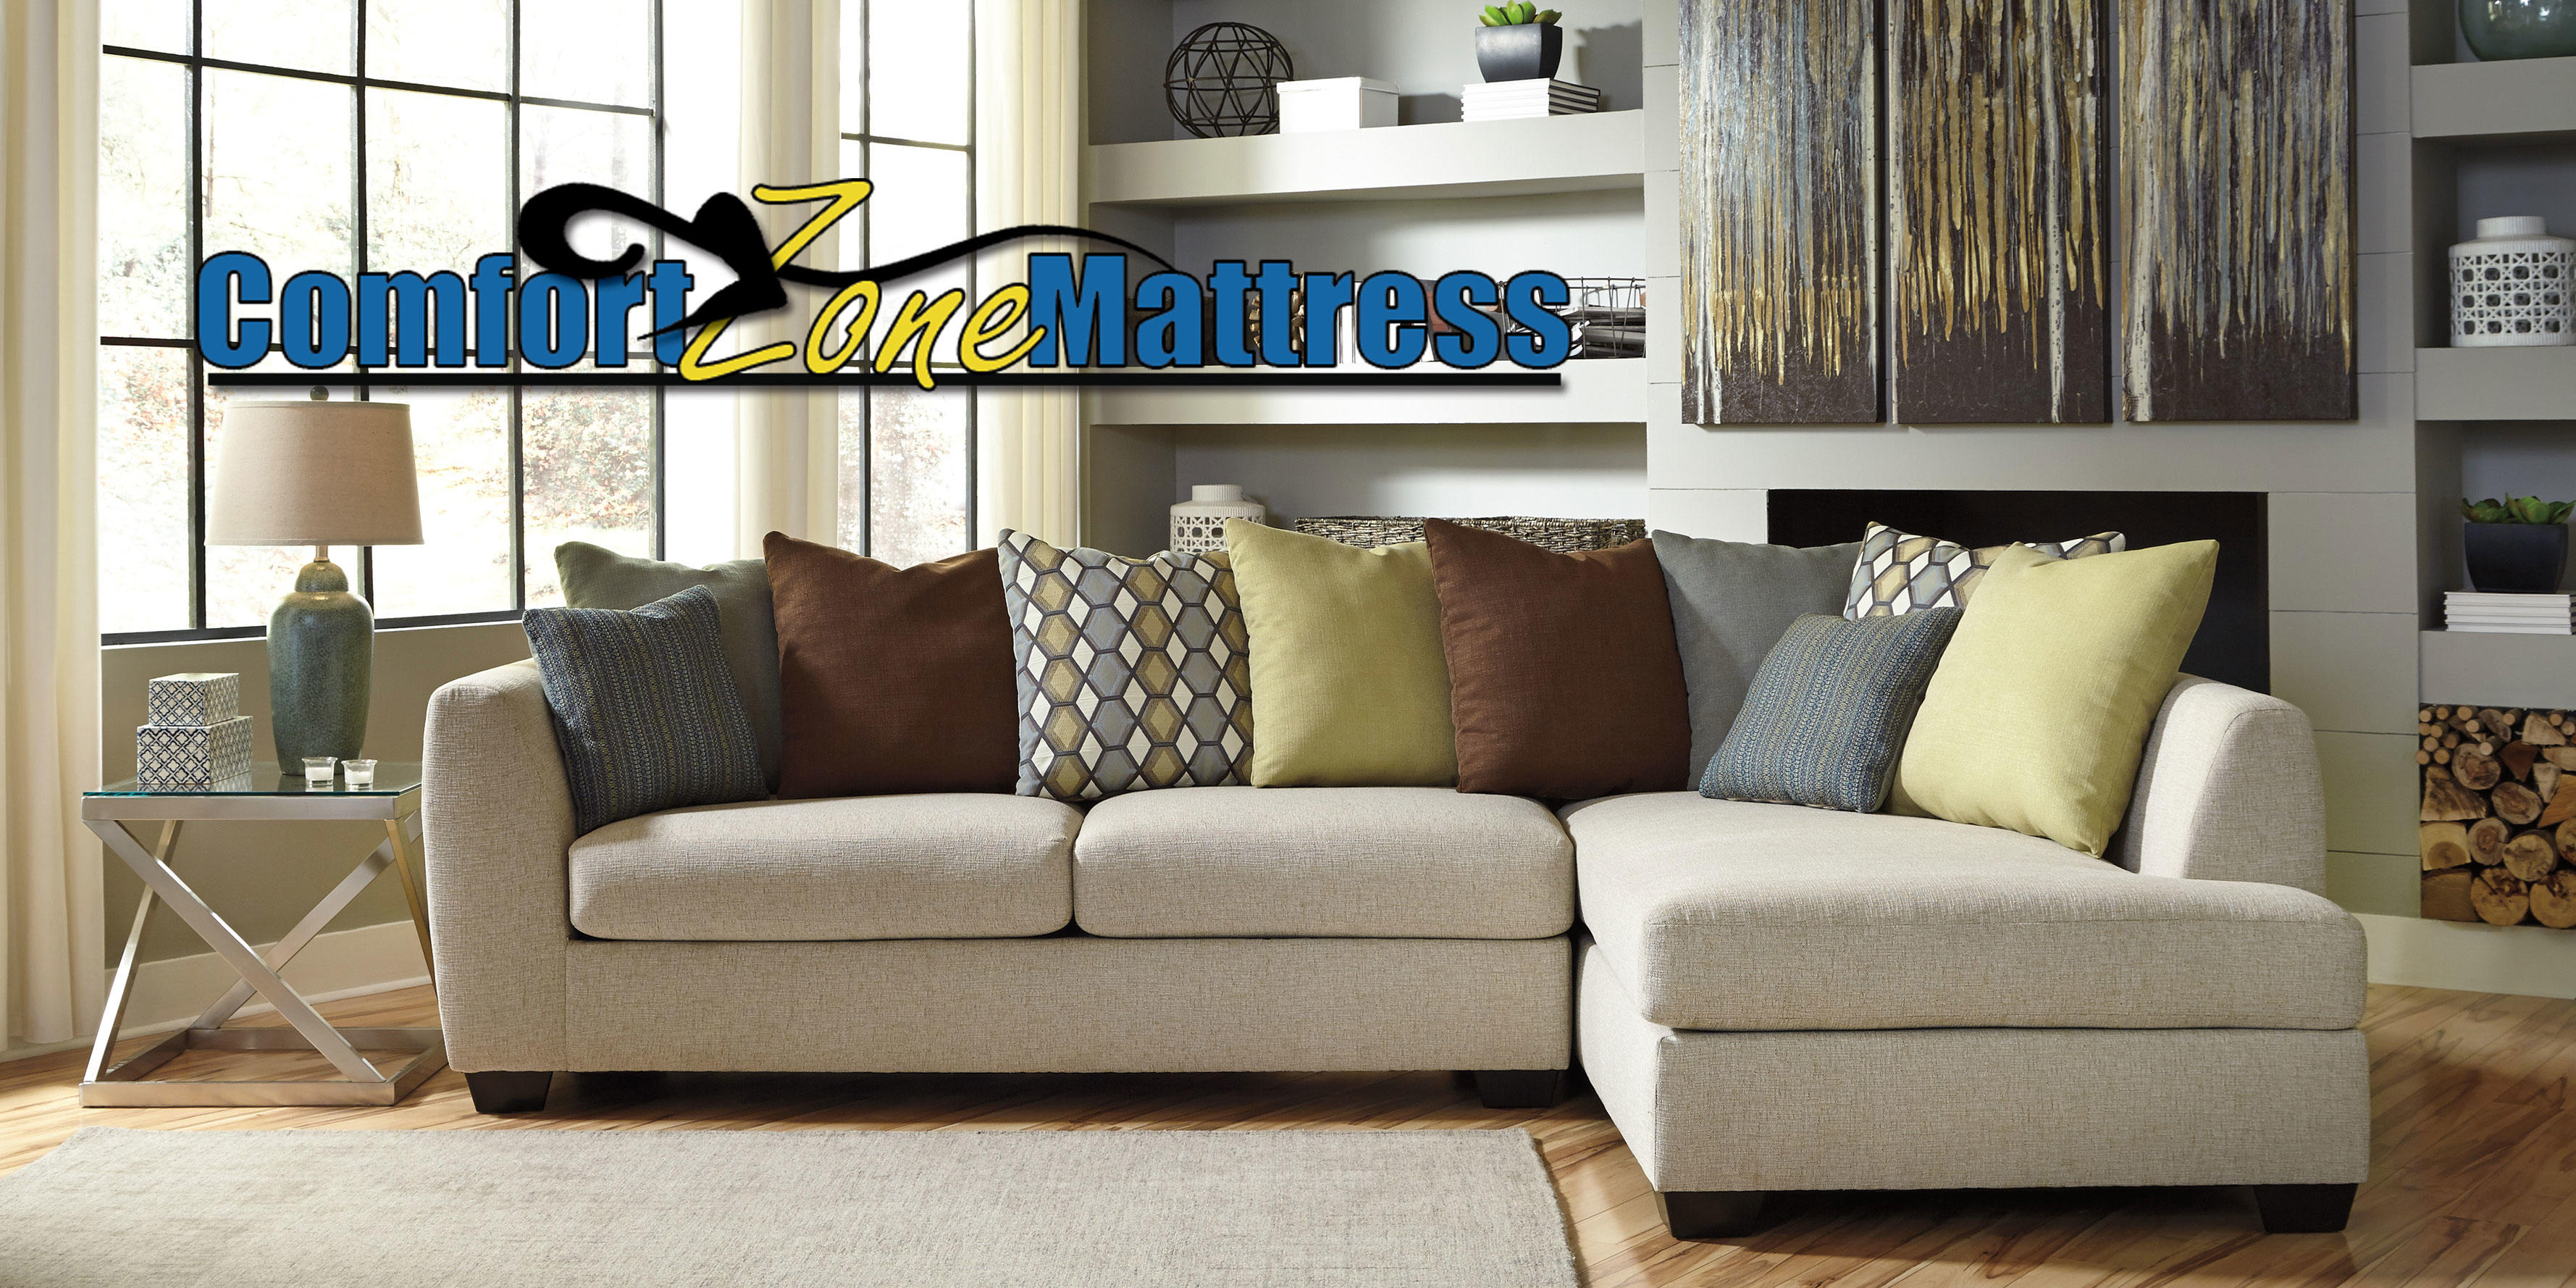 Comfort zone mattress in york pa 17401 for Furniture zone near me